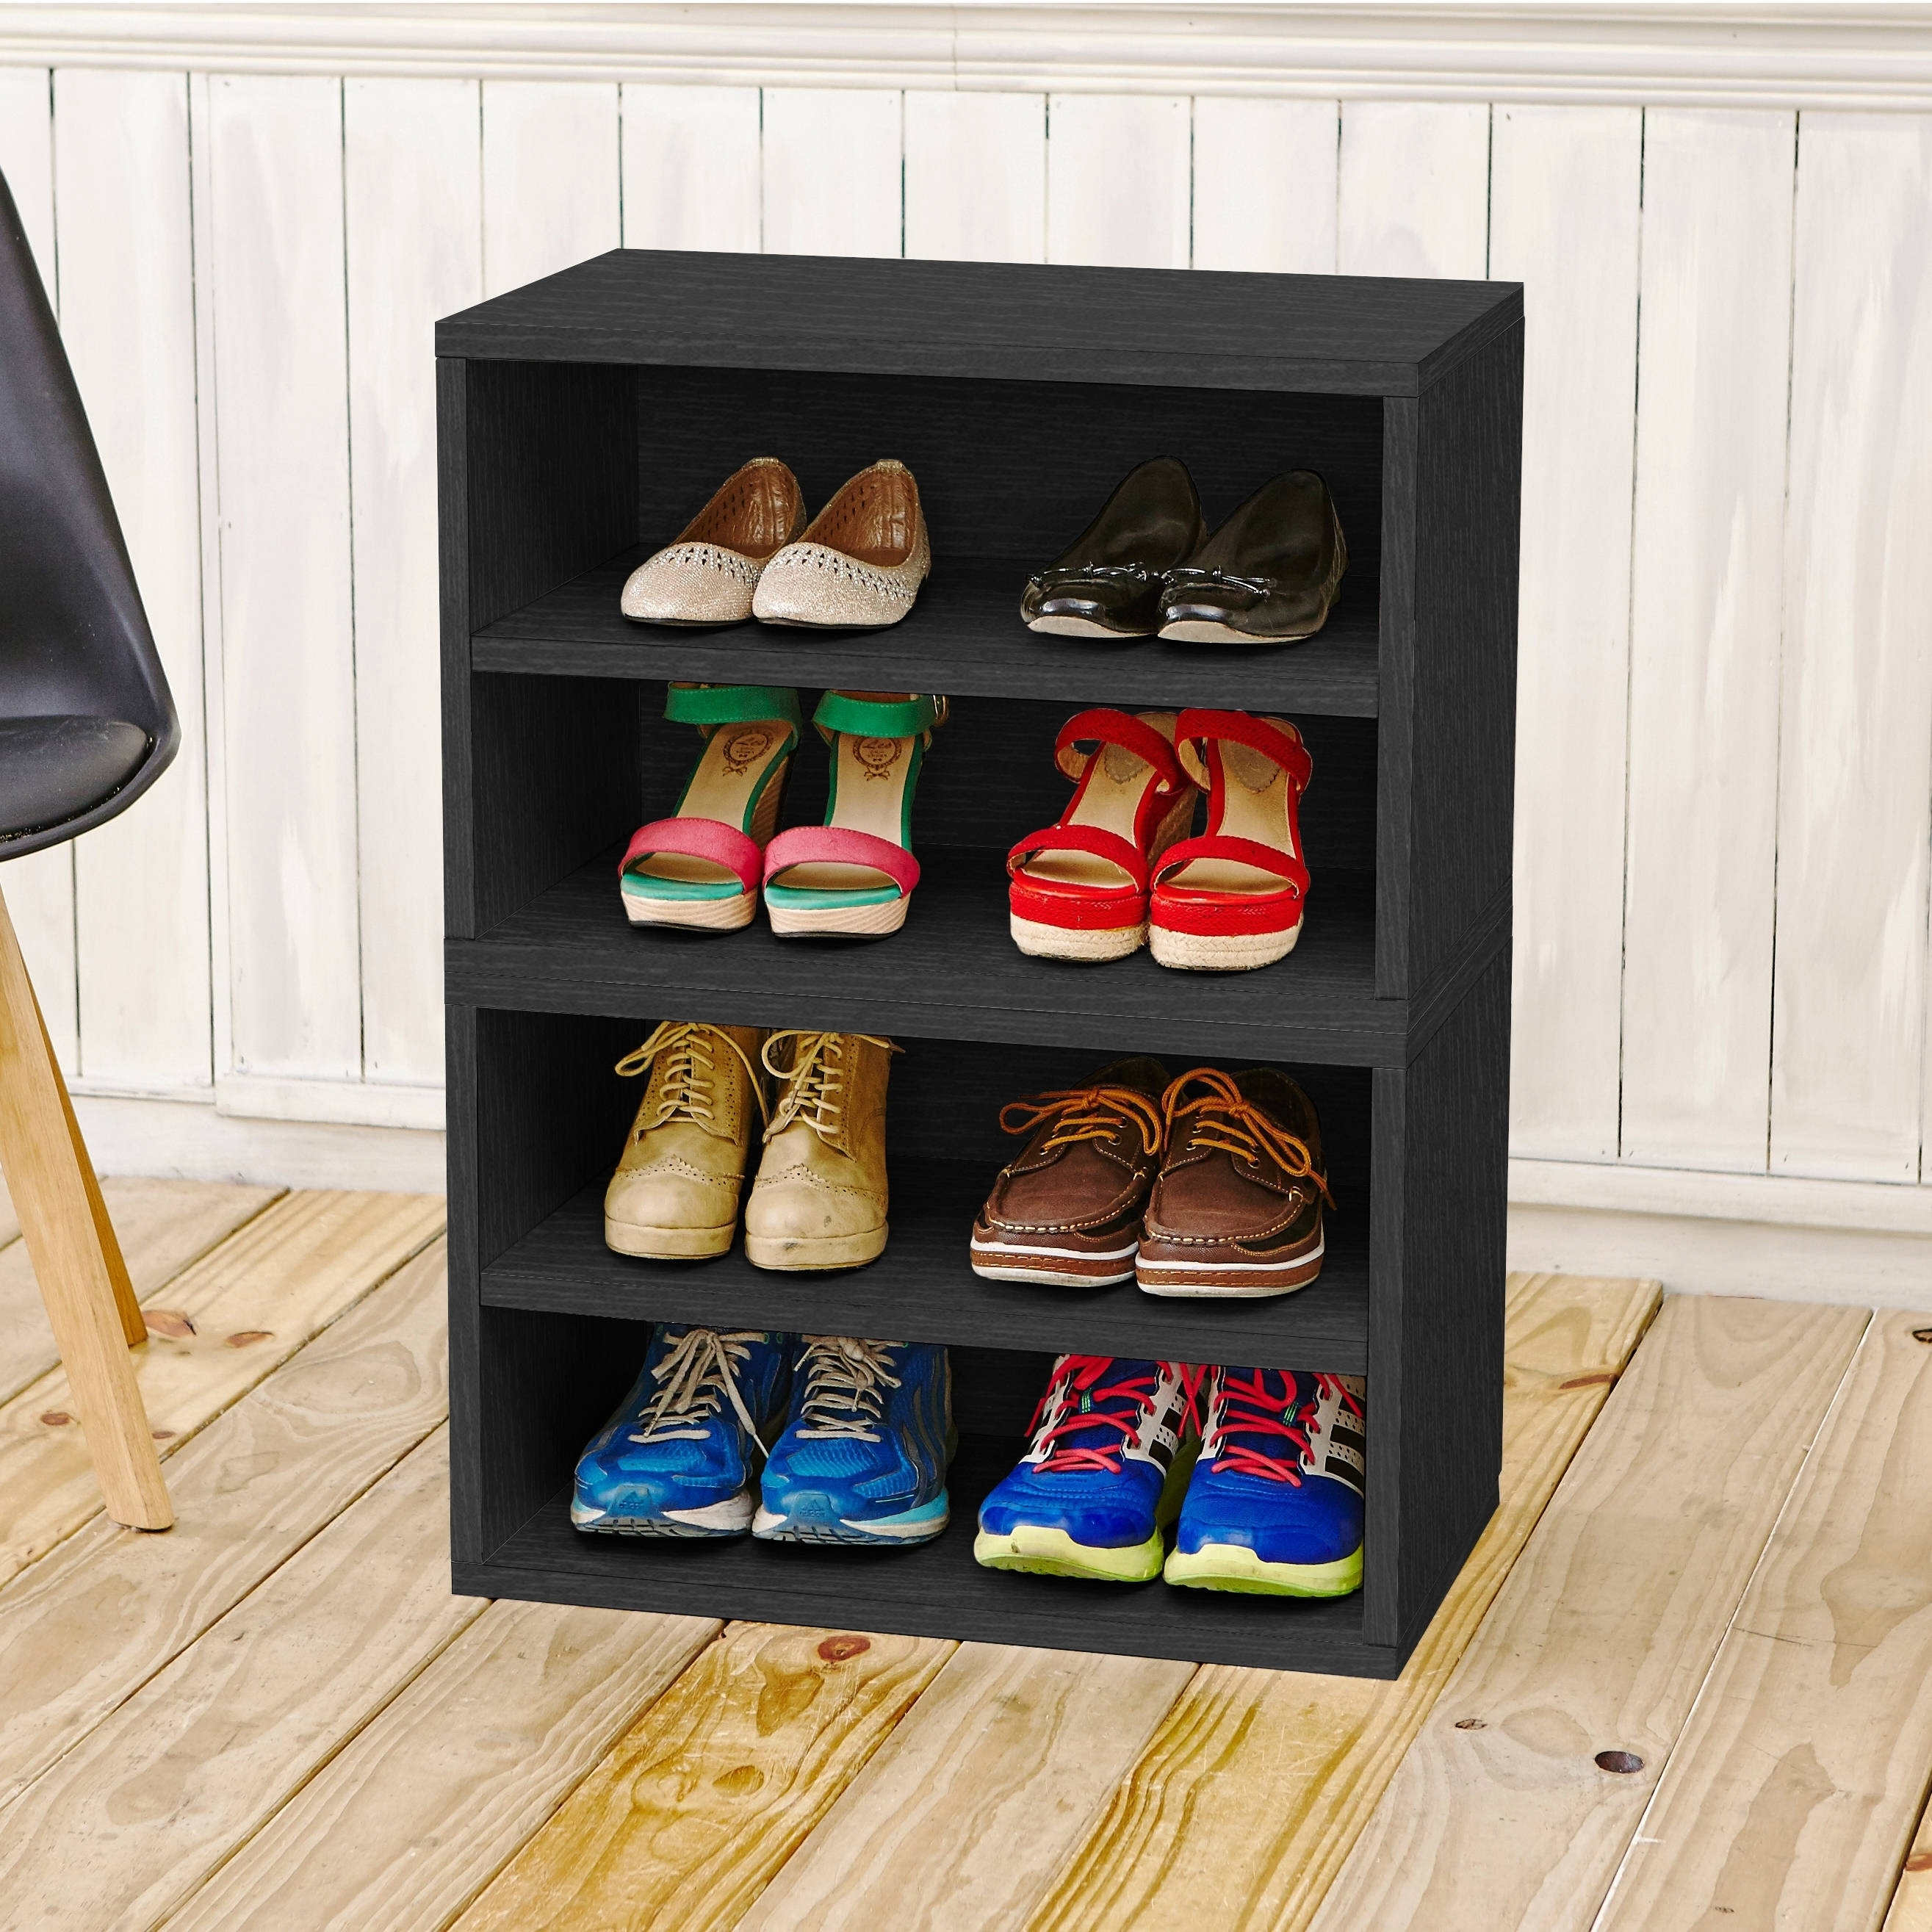 Shop Modular Storage System Shoe Rack Bookcase Shelving By Way Basics  LIFETIME GUARANTEE   On Sale   Free Shipping Today   Overstock.com    12357789